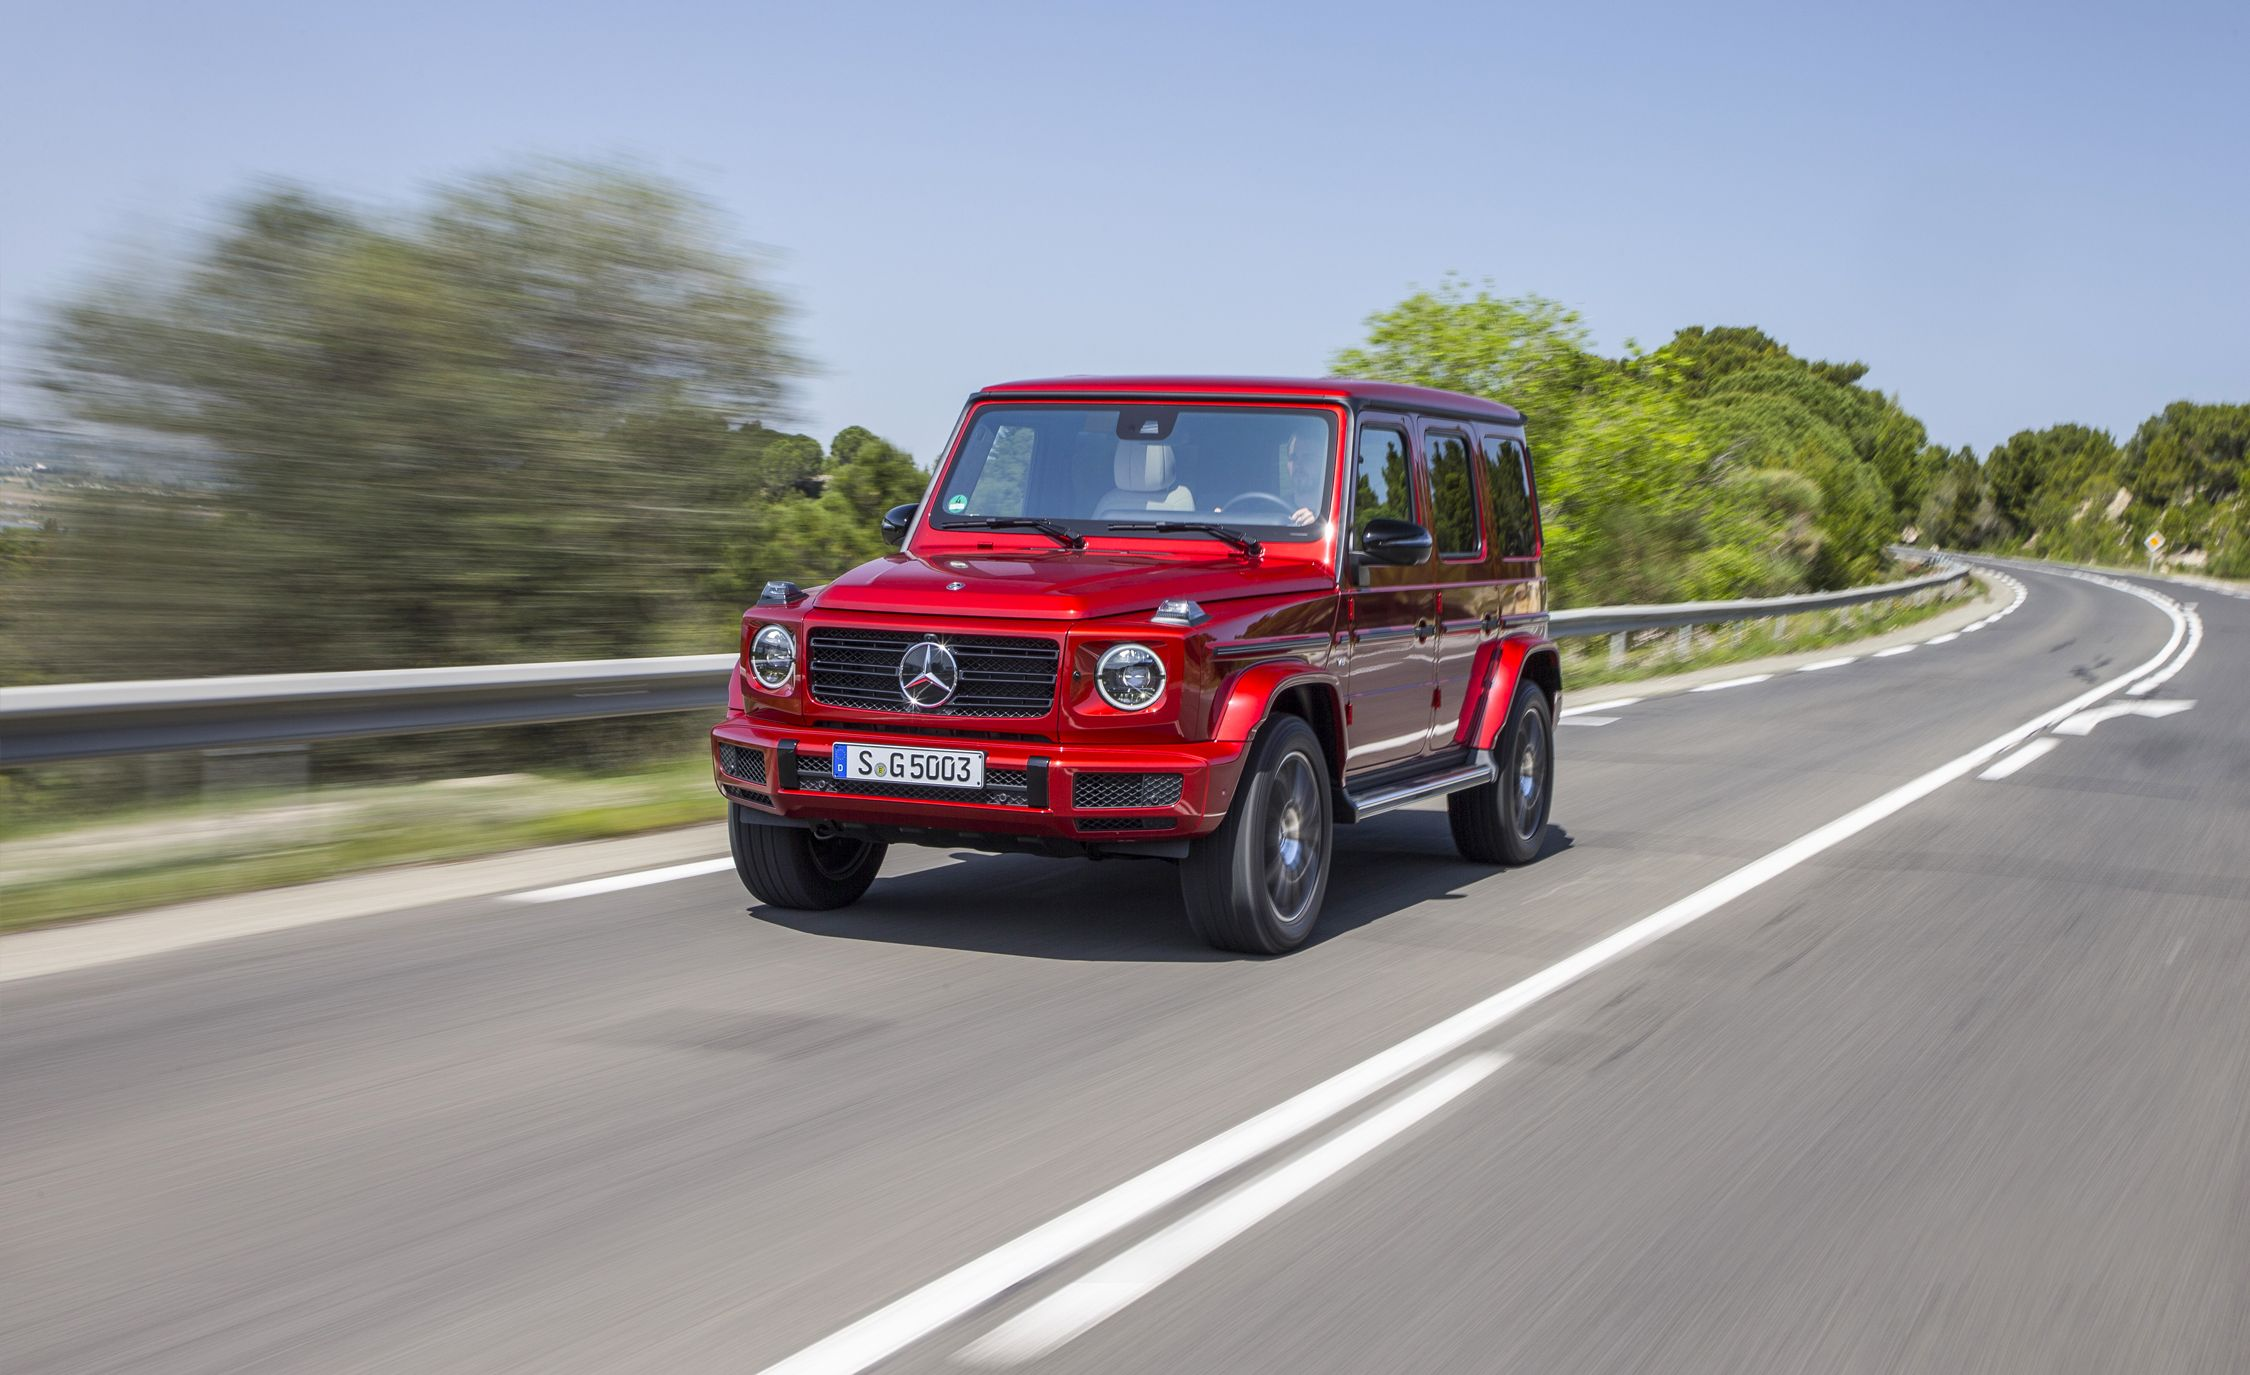 Benz Silver Lightning Price >> 2019 Mercedes-Benz G-class Driven: Less Crazy, Still Outrageous | Review | Car and Driver